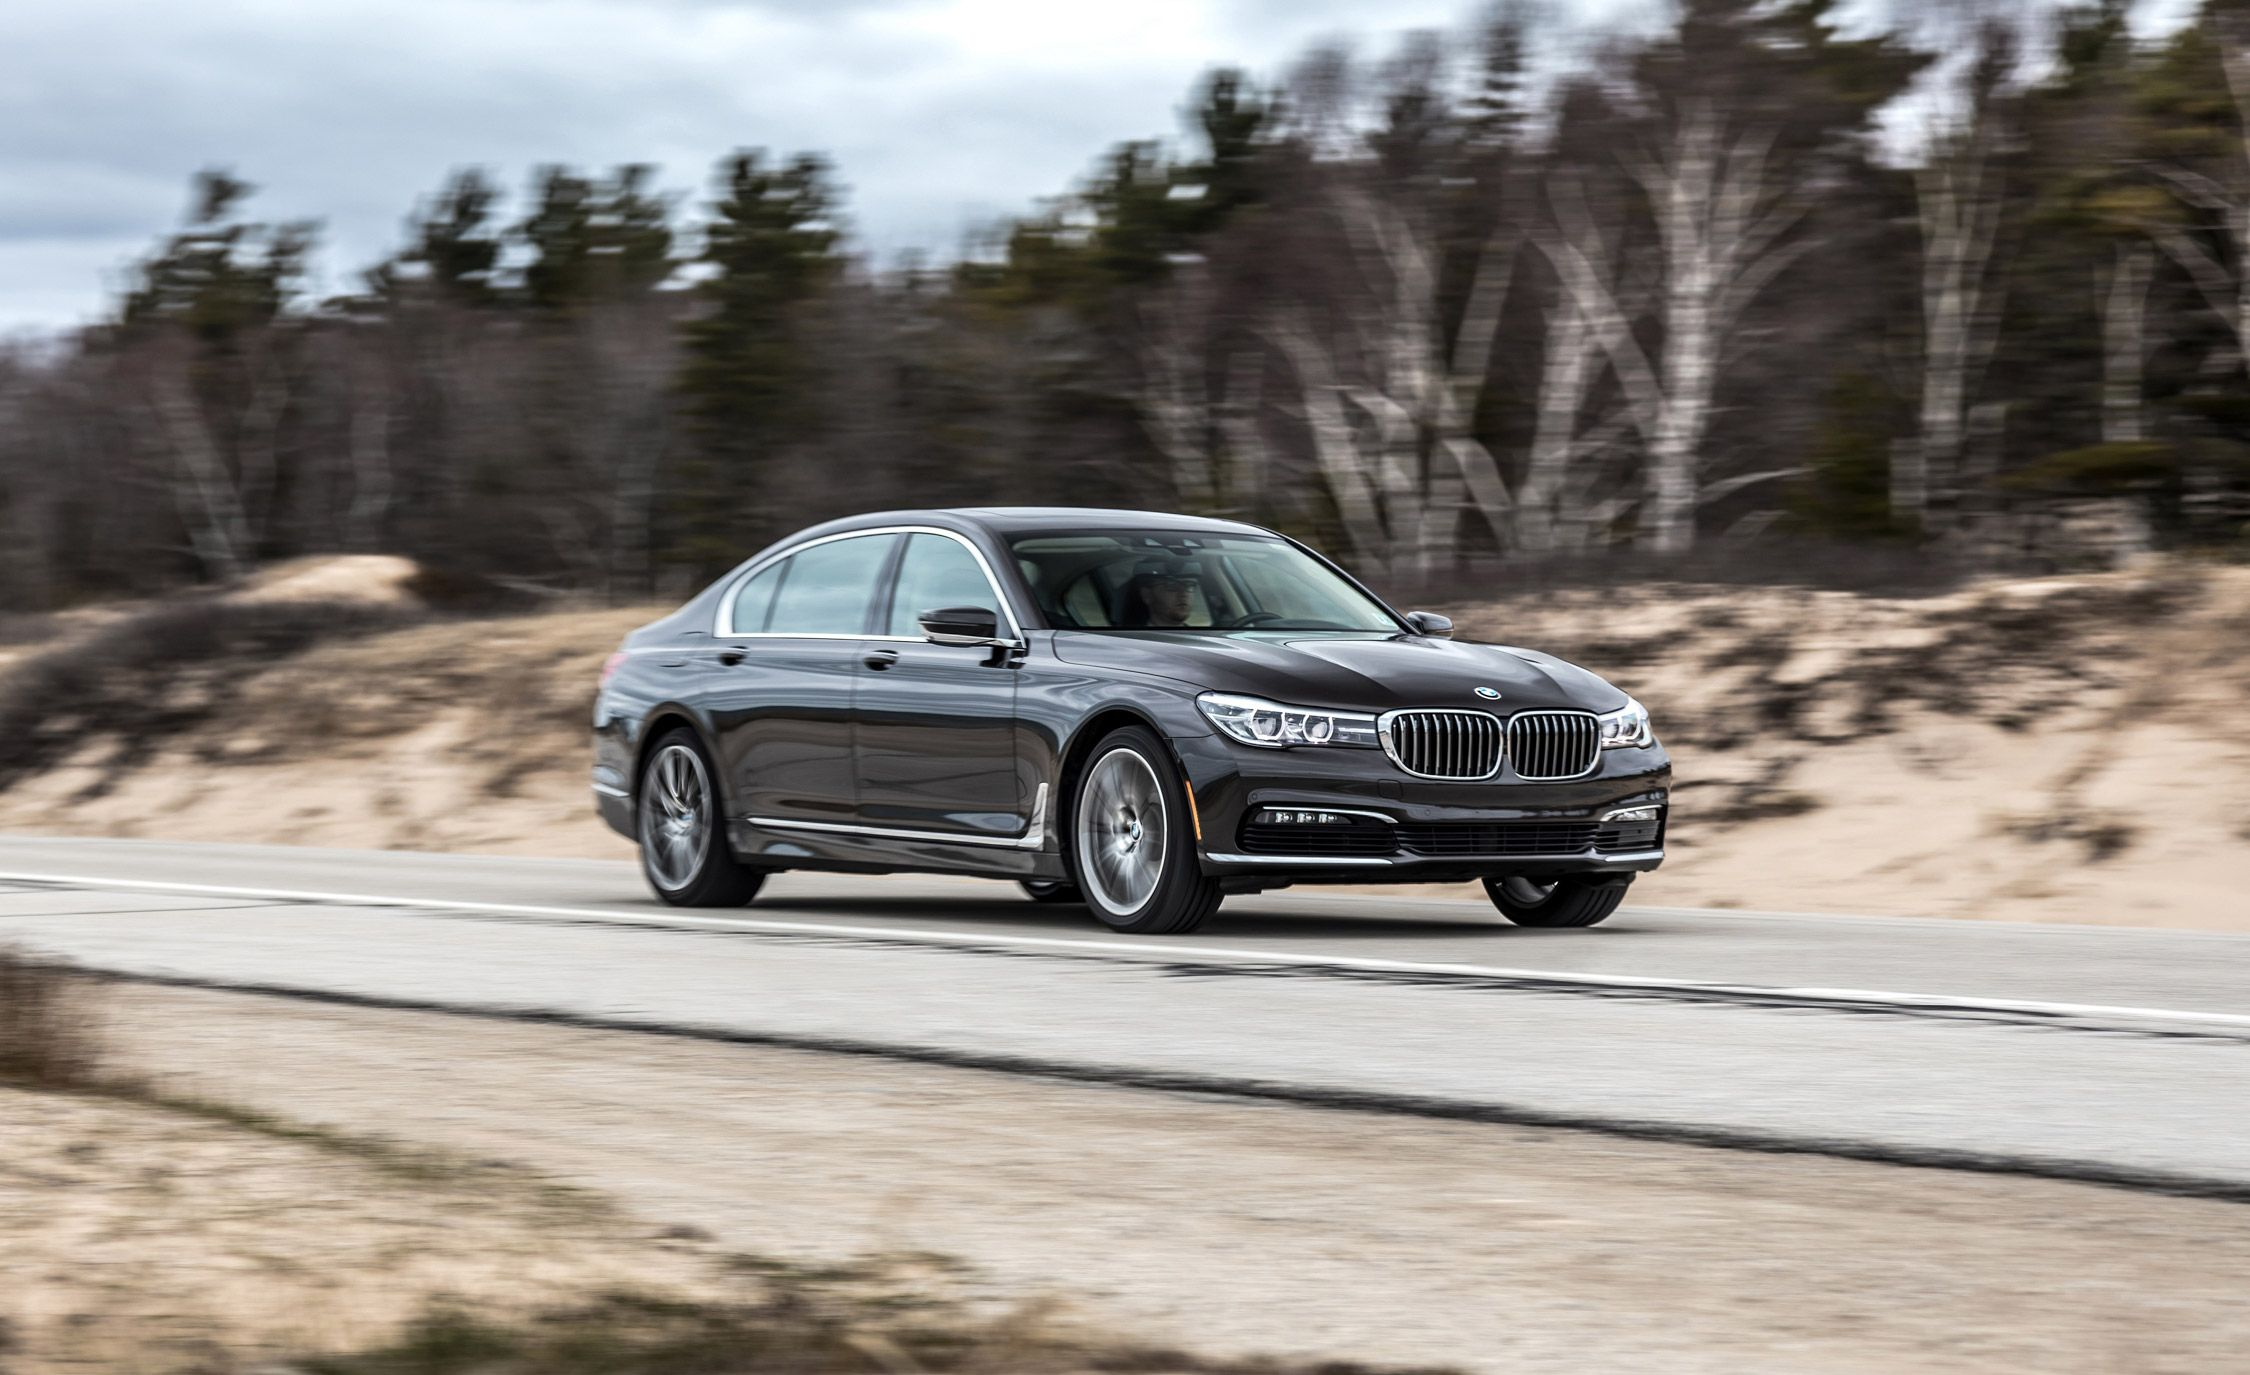 2016 bmw 740i long term test review car and driver wiring diagram bmw f01 further return to top of page also bmw wheels [ 2250 x 1375 Pixel ]